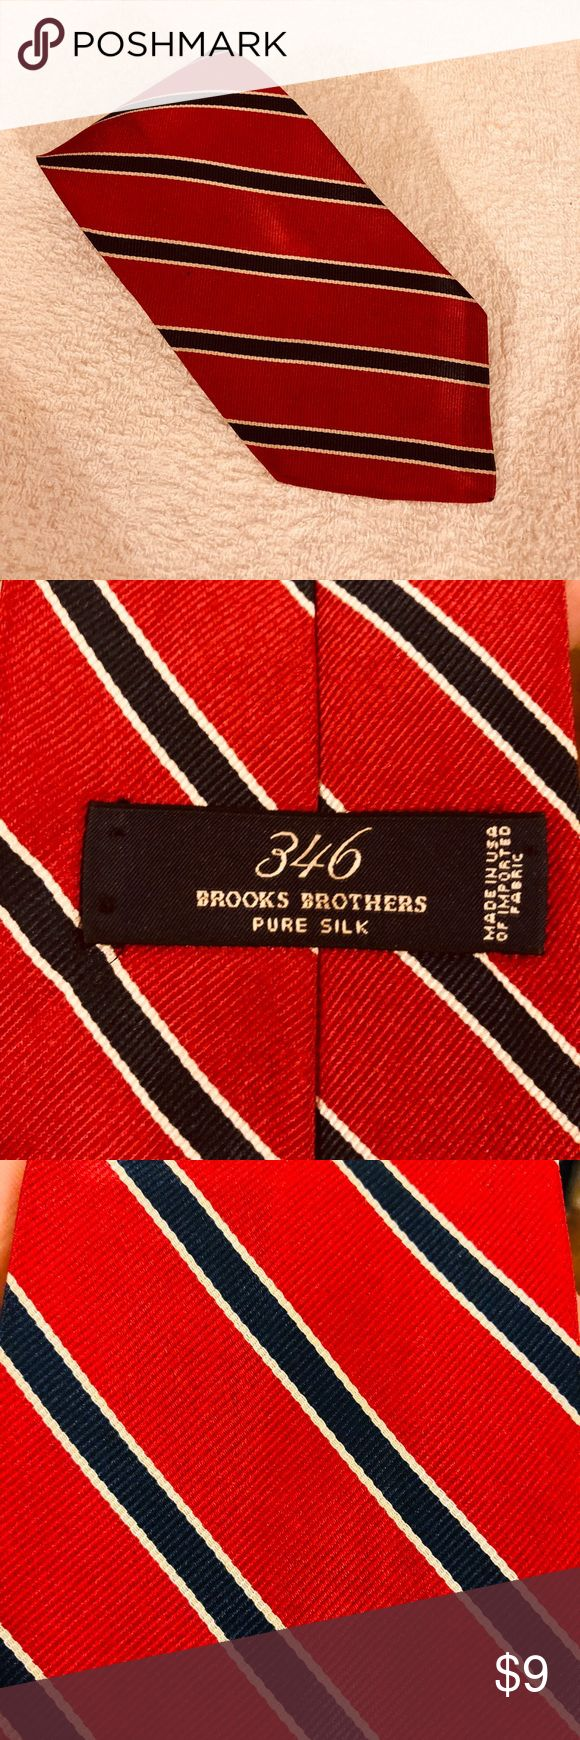 Brooks Brothers Red w/ Navy & White Stripe Tie Brooks Brothers Red With Navy Blue and White Stripe Silk Necktie! Great condition! Please make reasonable offers and bundle! Ask questions! Brooks Brothers Accessories Ties